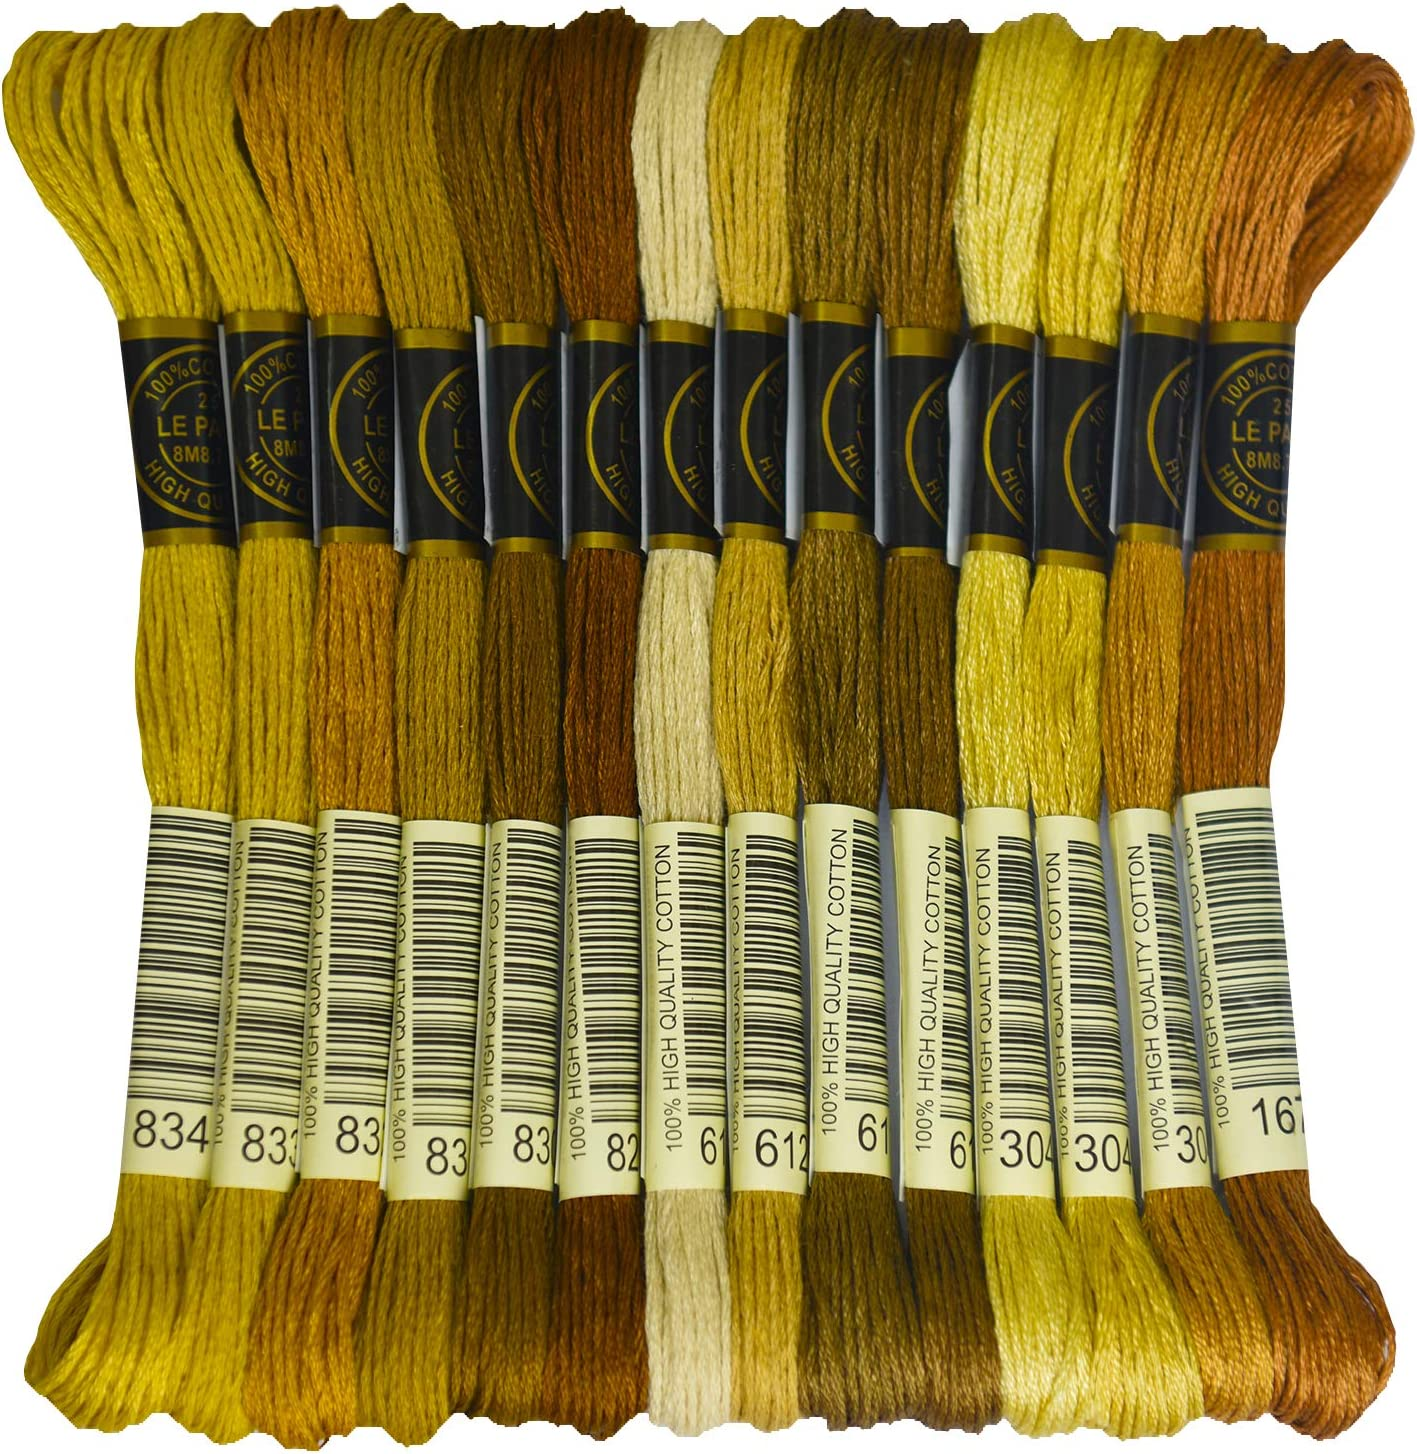 Cross Stitch Threads Premium Grey Embroidery Floss Crafts Floss- Hand Embroidery Thread 24 Skeins Per Pack and Free Set of 3Embroidery Needles and 2 Needle Threader Friendship Bracelets Floss